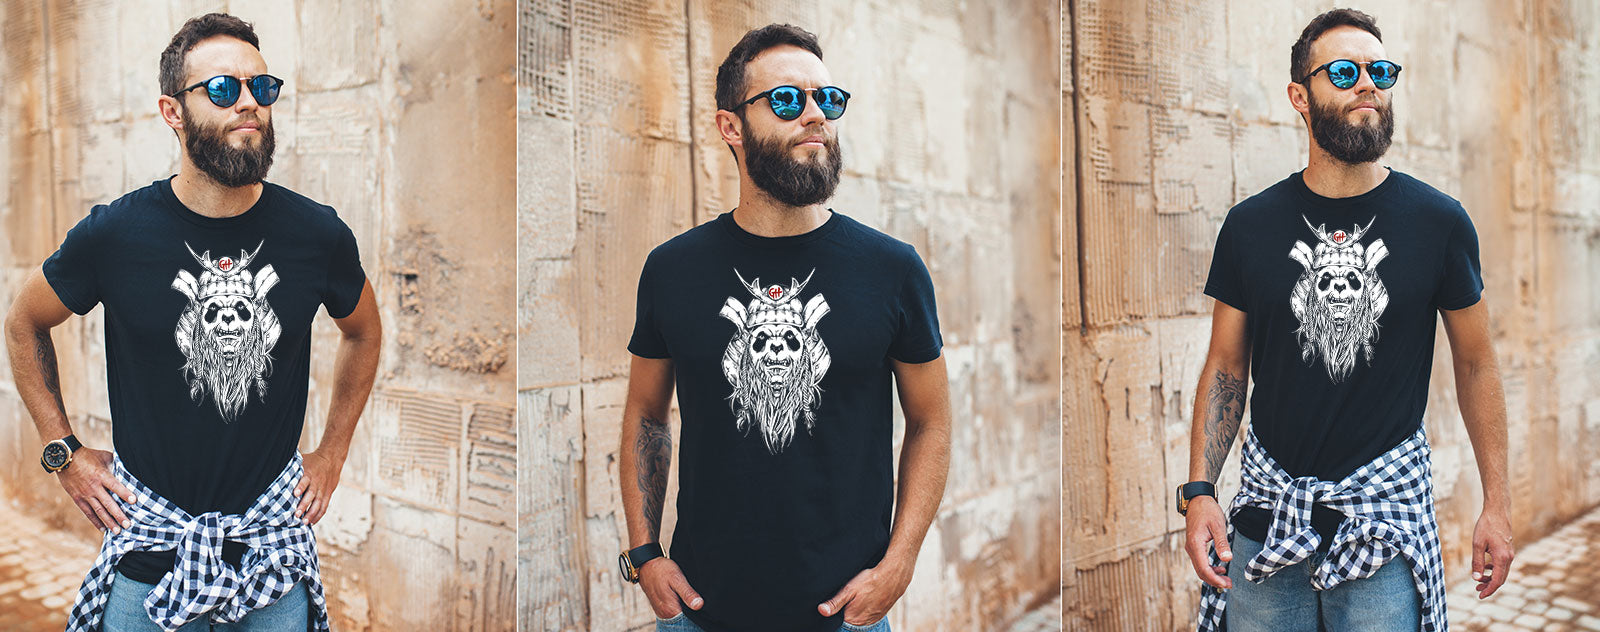 T-shirt barbu samouraï bio collection frenchy